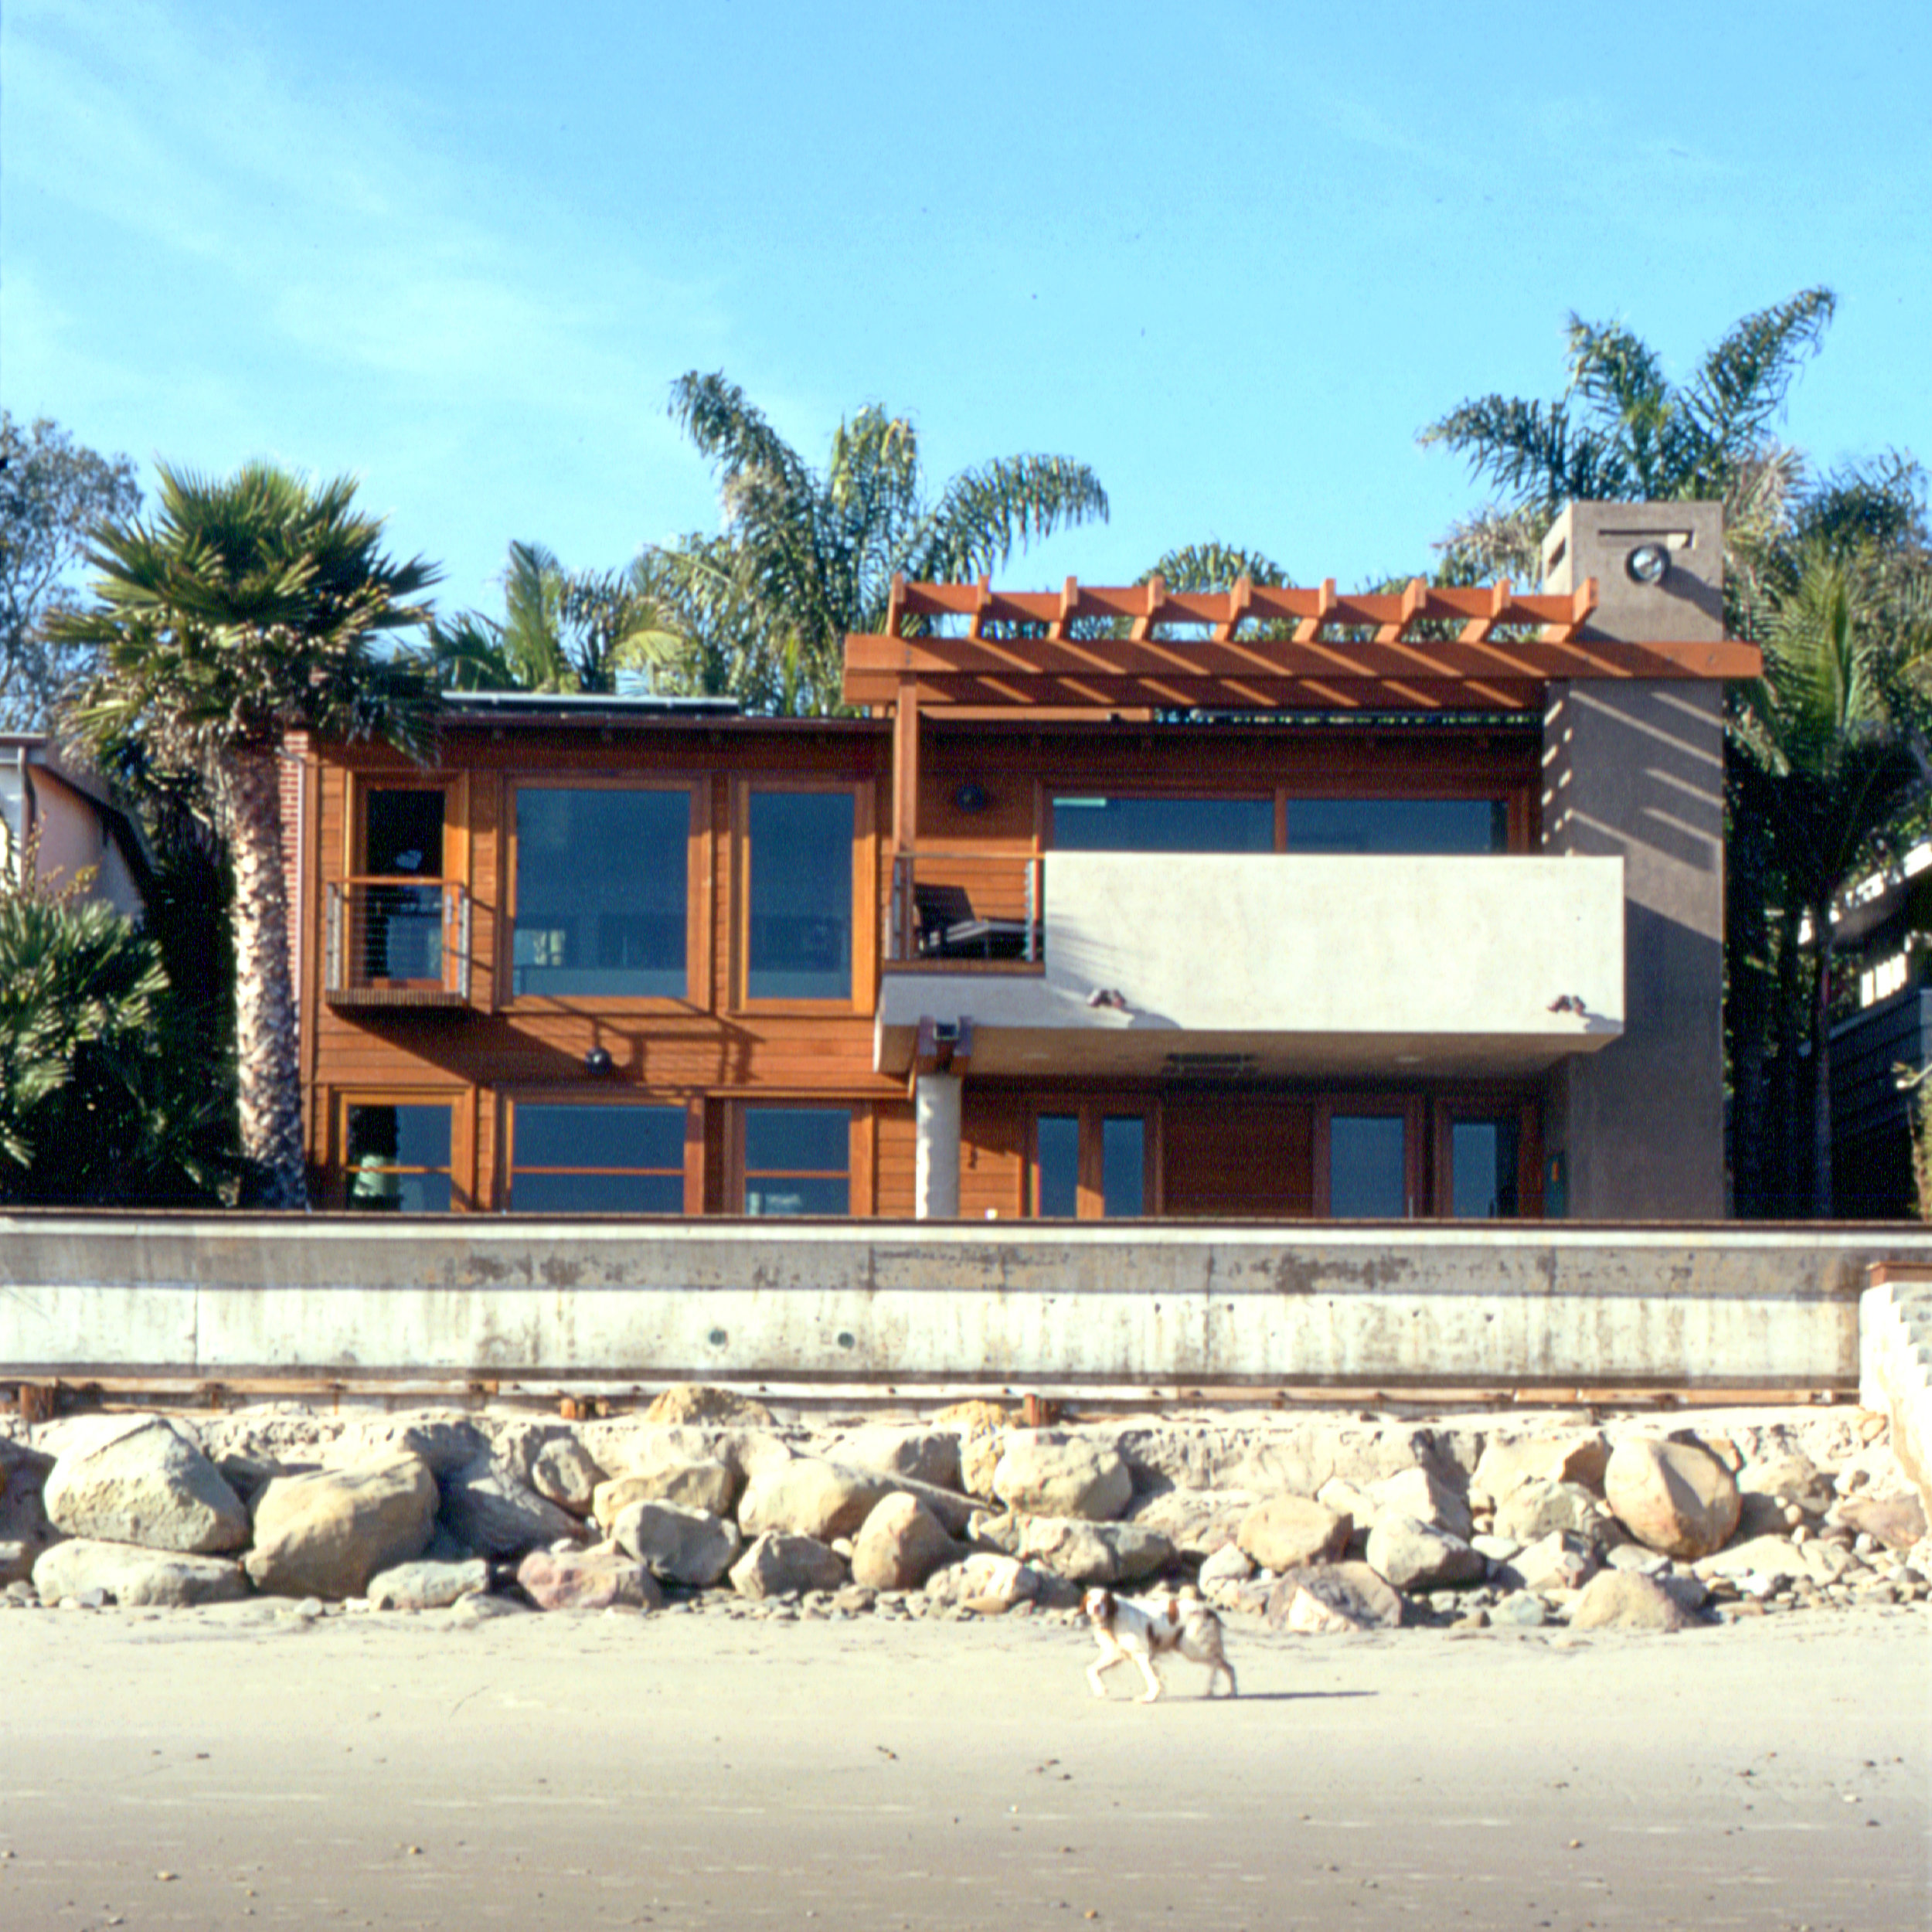 S.E.A.-Studio-Environmental-Architecture-David-Hertz-FAIA-Hall-Dreyfus-Beach-House-Montecito-California-sustainable-regenerative-restorative-design-residential-contemporary-modern-ocean-view-concrete-wood-remodel-SoCal-waterfront-scenic-studioea-1.jpg